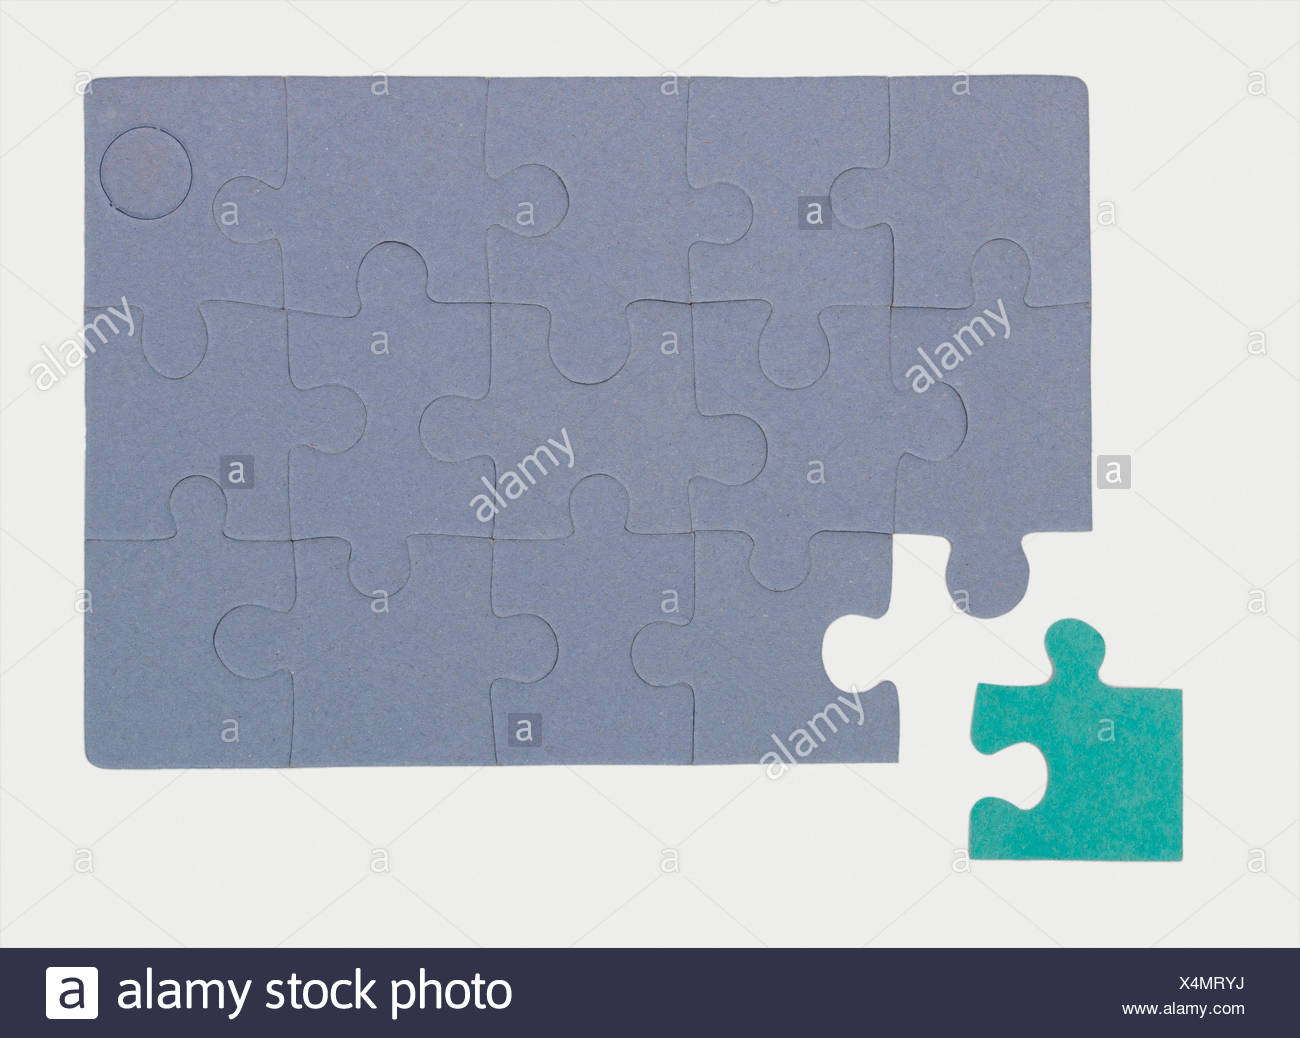 Jigsaw puzzle with unfitting final piece, symbolic of an outsider - Stock Image